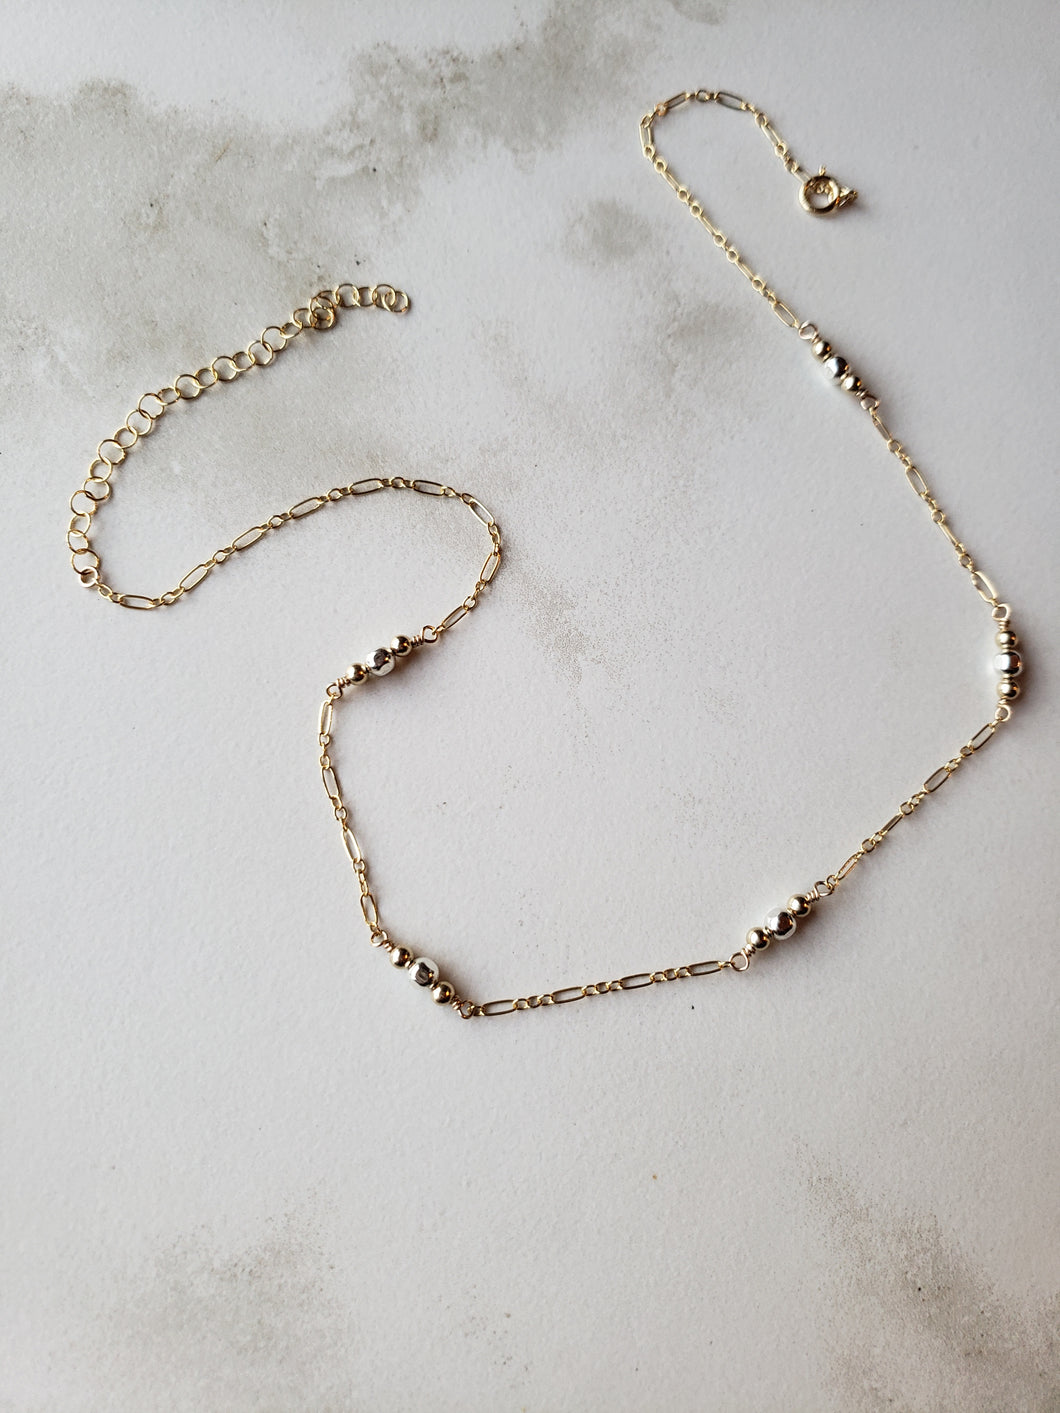 Mixed Metals Segmented Necklace on Larger Chain